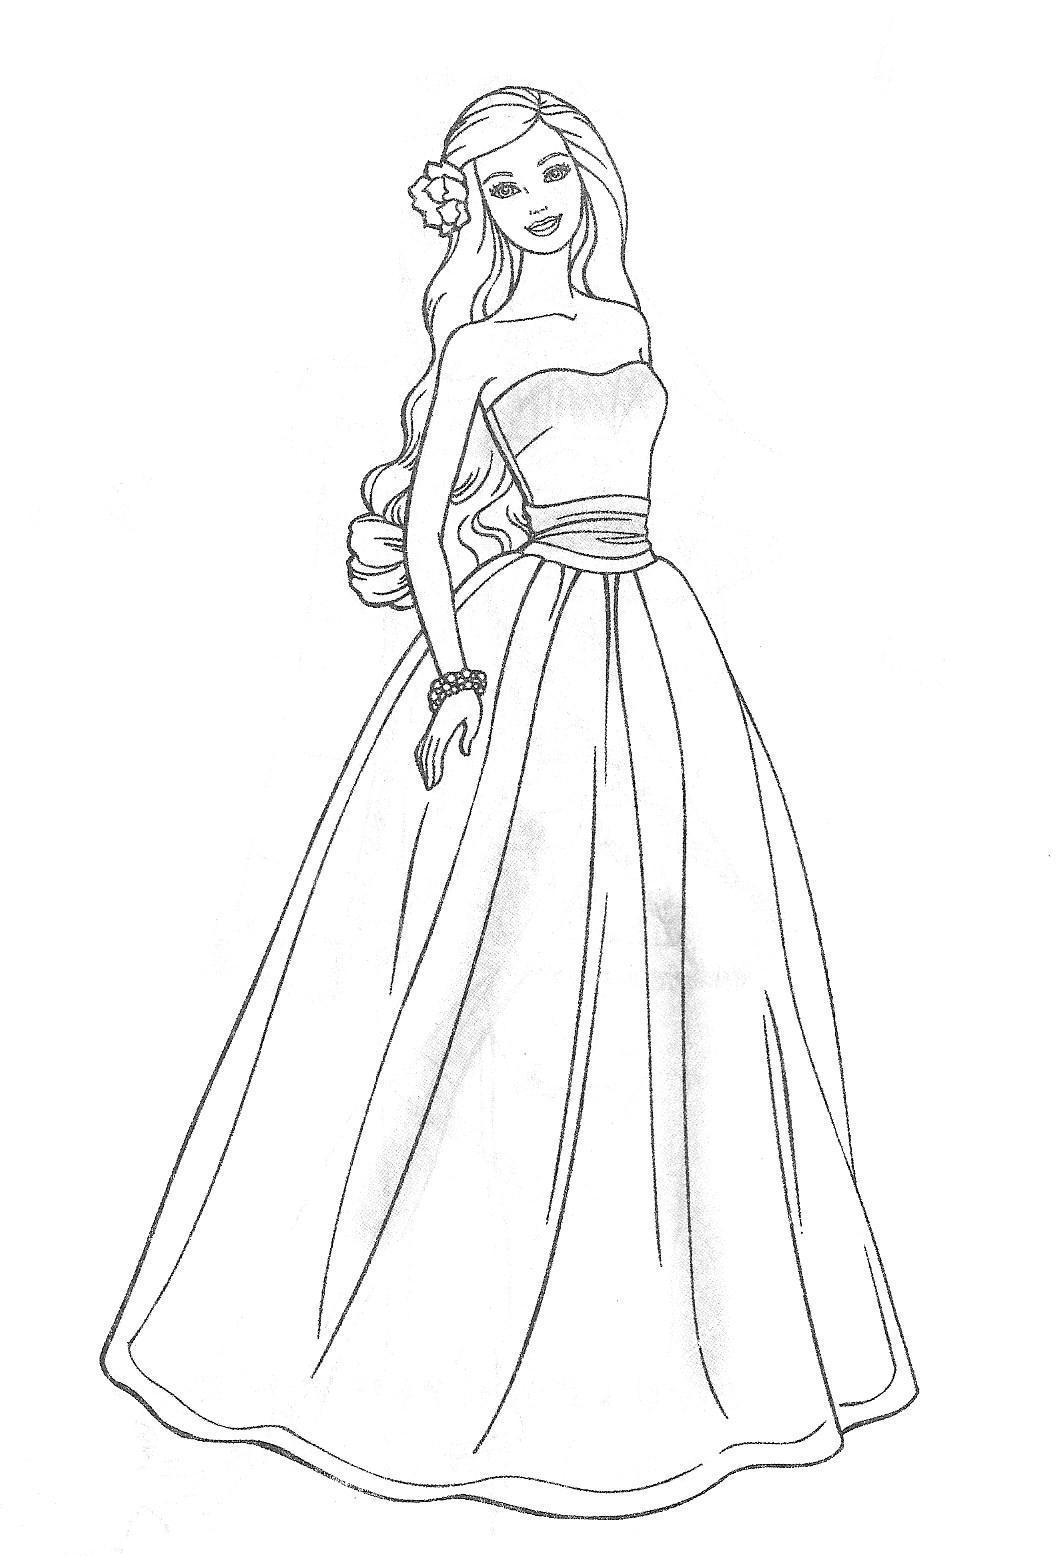 Coloring Pages Of Girls In Dresses At Getdrawings Free Download